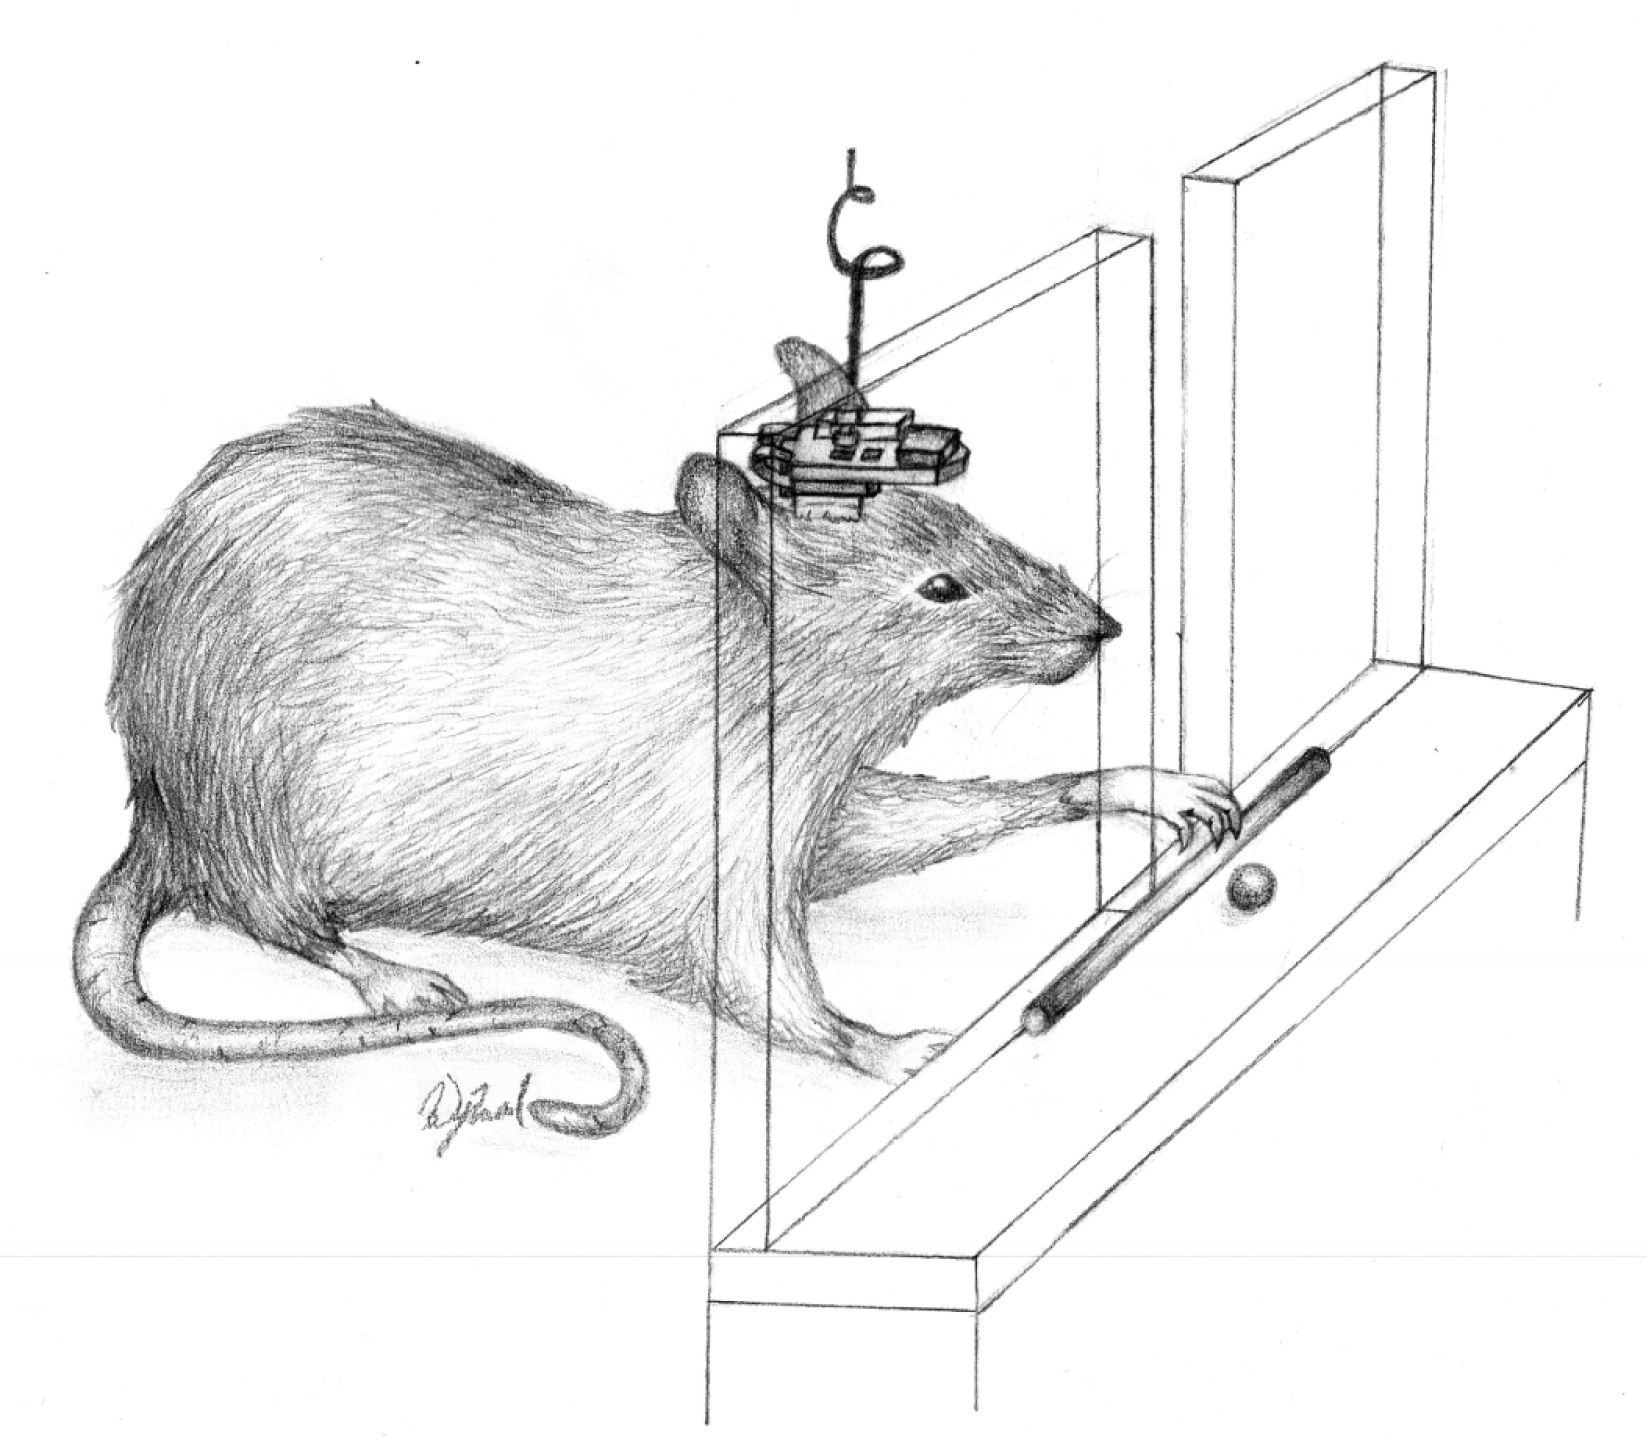 Rat with prostheses